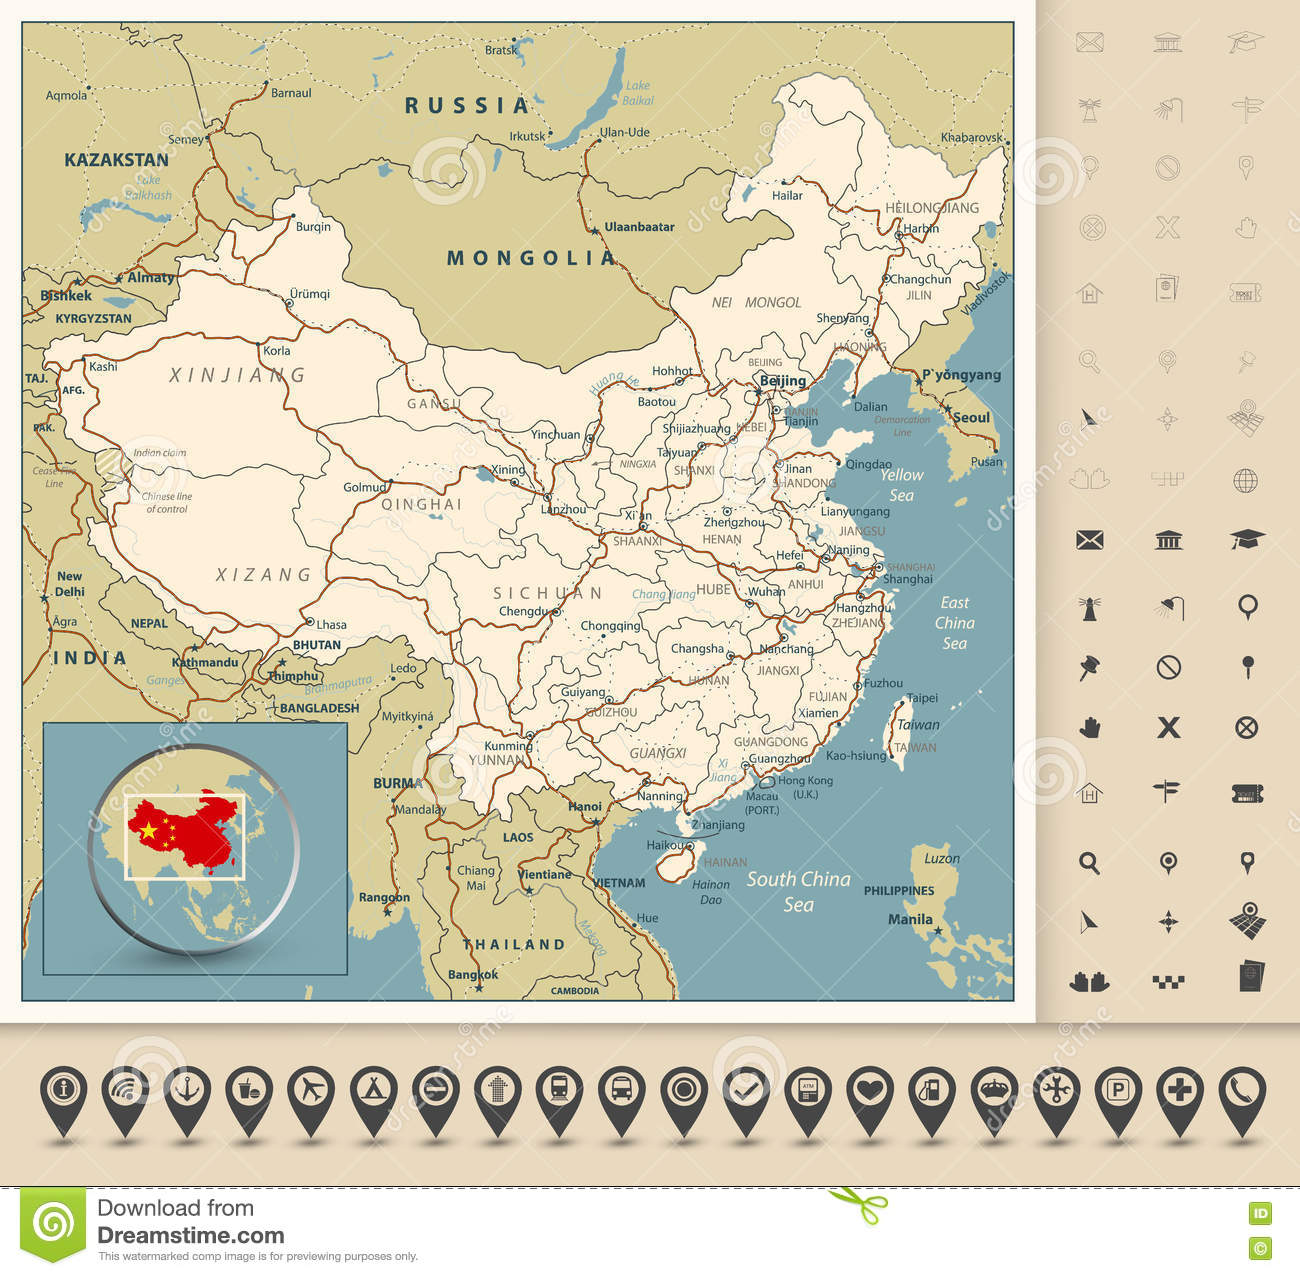 Rivers Map Of China.Highly Detailed Road Map Of China With Roads Railroads Rivers